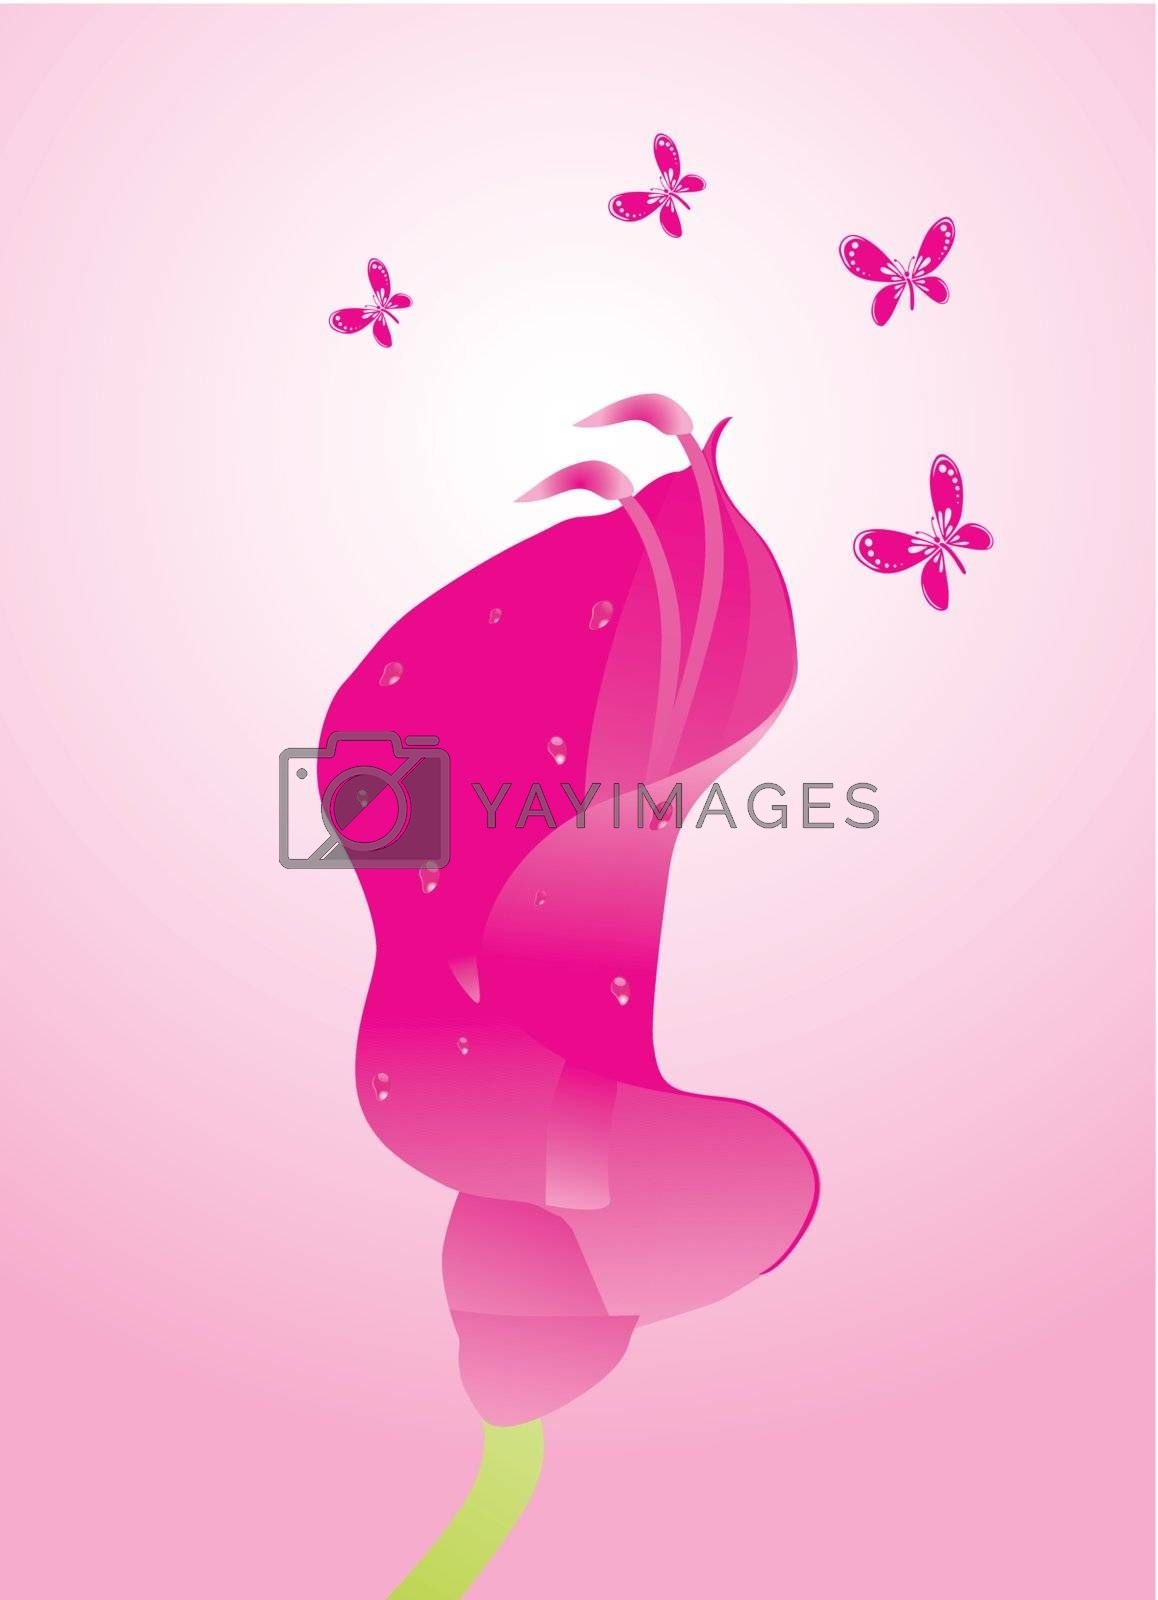 beautifull background with flower and butterfly design6